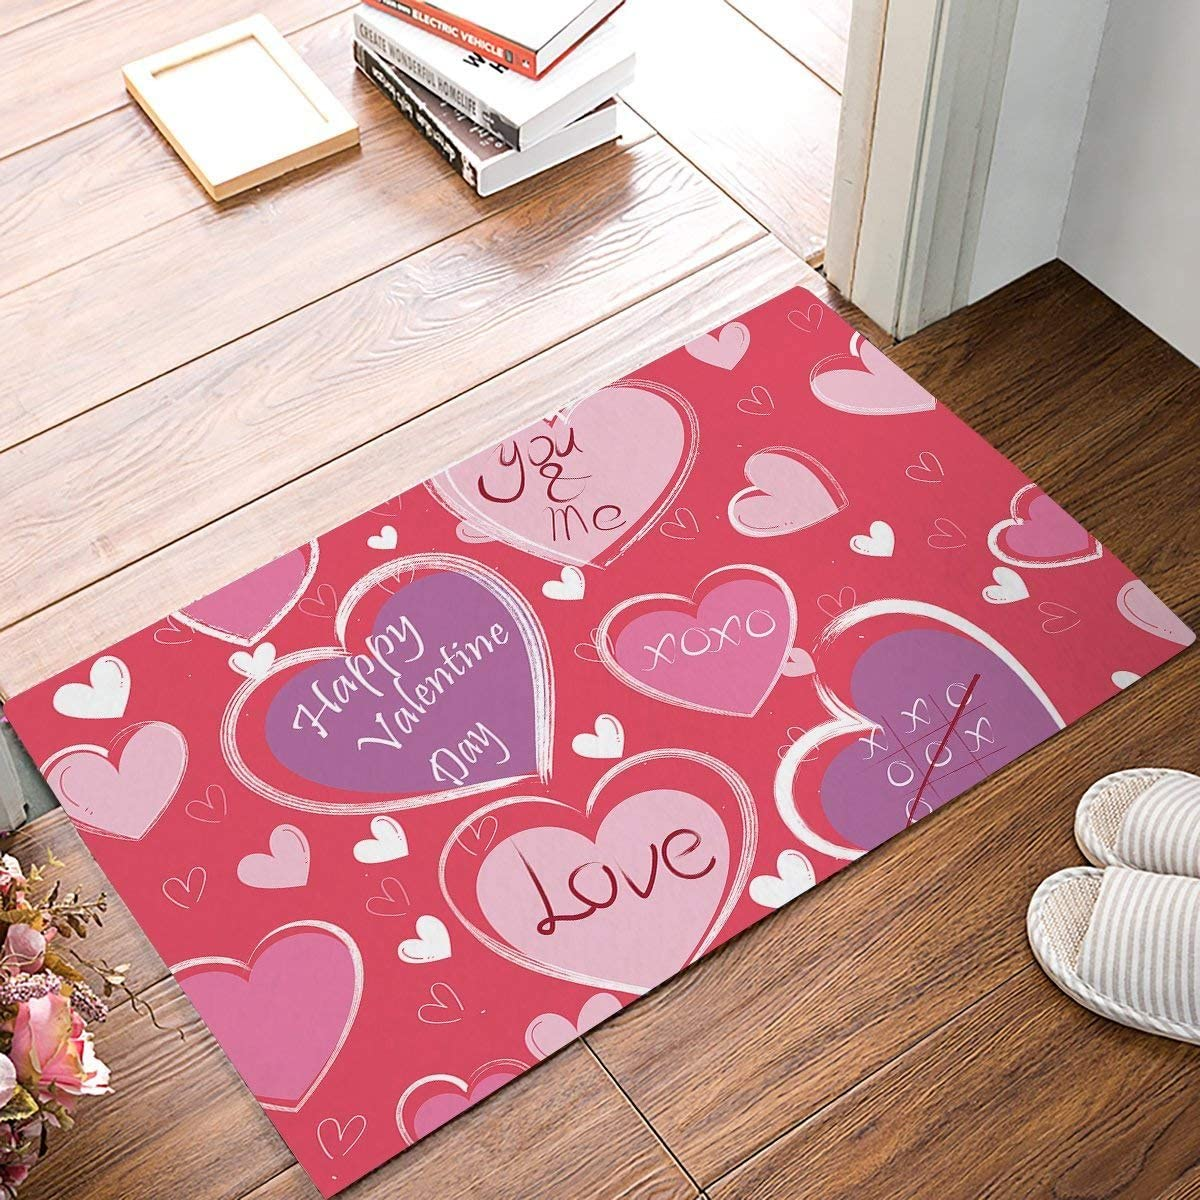 FAMILYDECOR Non Slip Doormat Entrance Mat Indoor Outdoor Front Door Bathroom Valentine s Day Theme Heart-Shaped Pattern Printed Floor Welcome Mat, You and Me Love, Purple and Pink White 20x32in